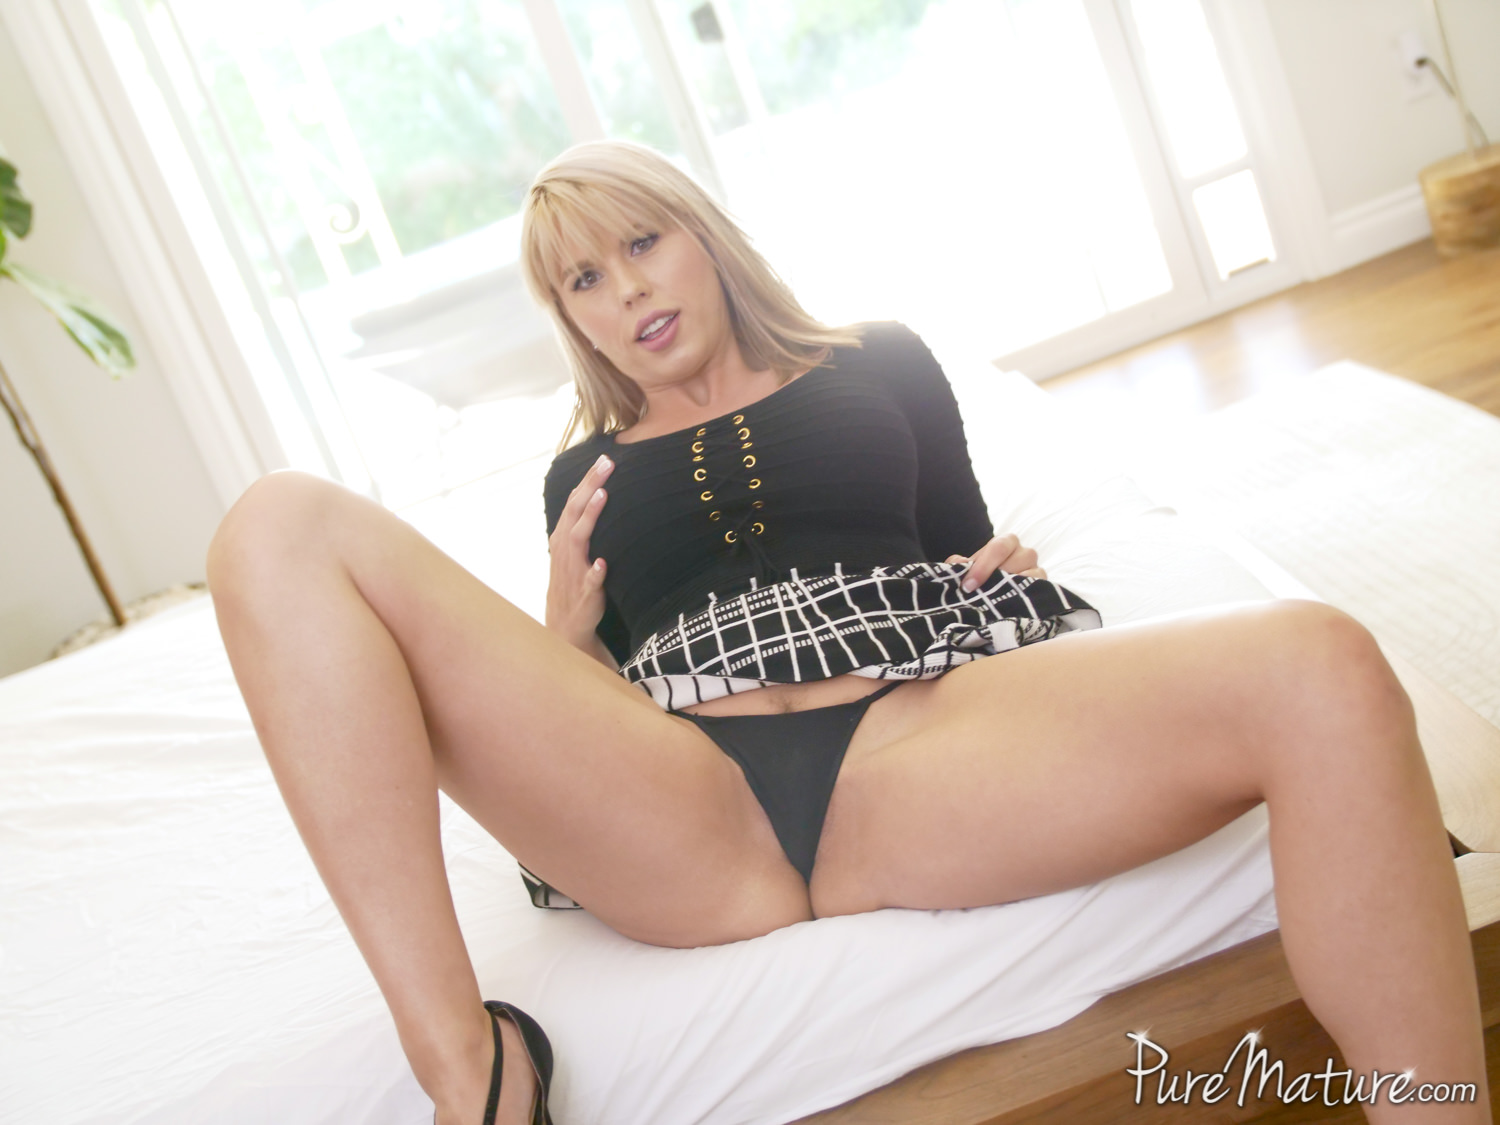 Amber Mature Porn amber chase - on probation - pure mature 133273